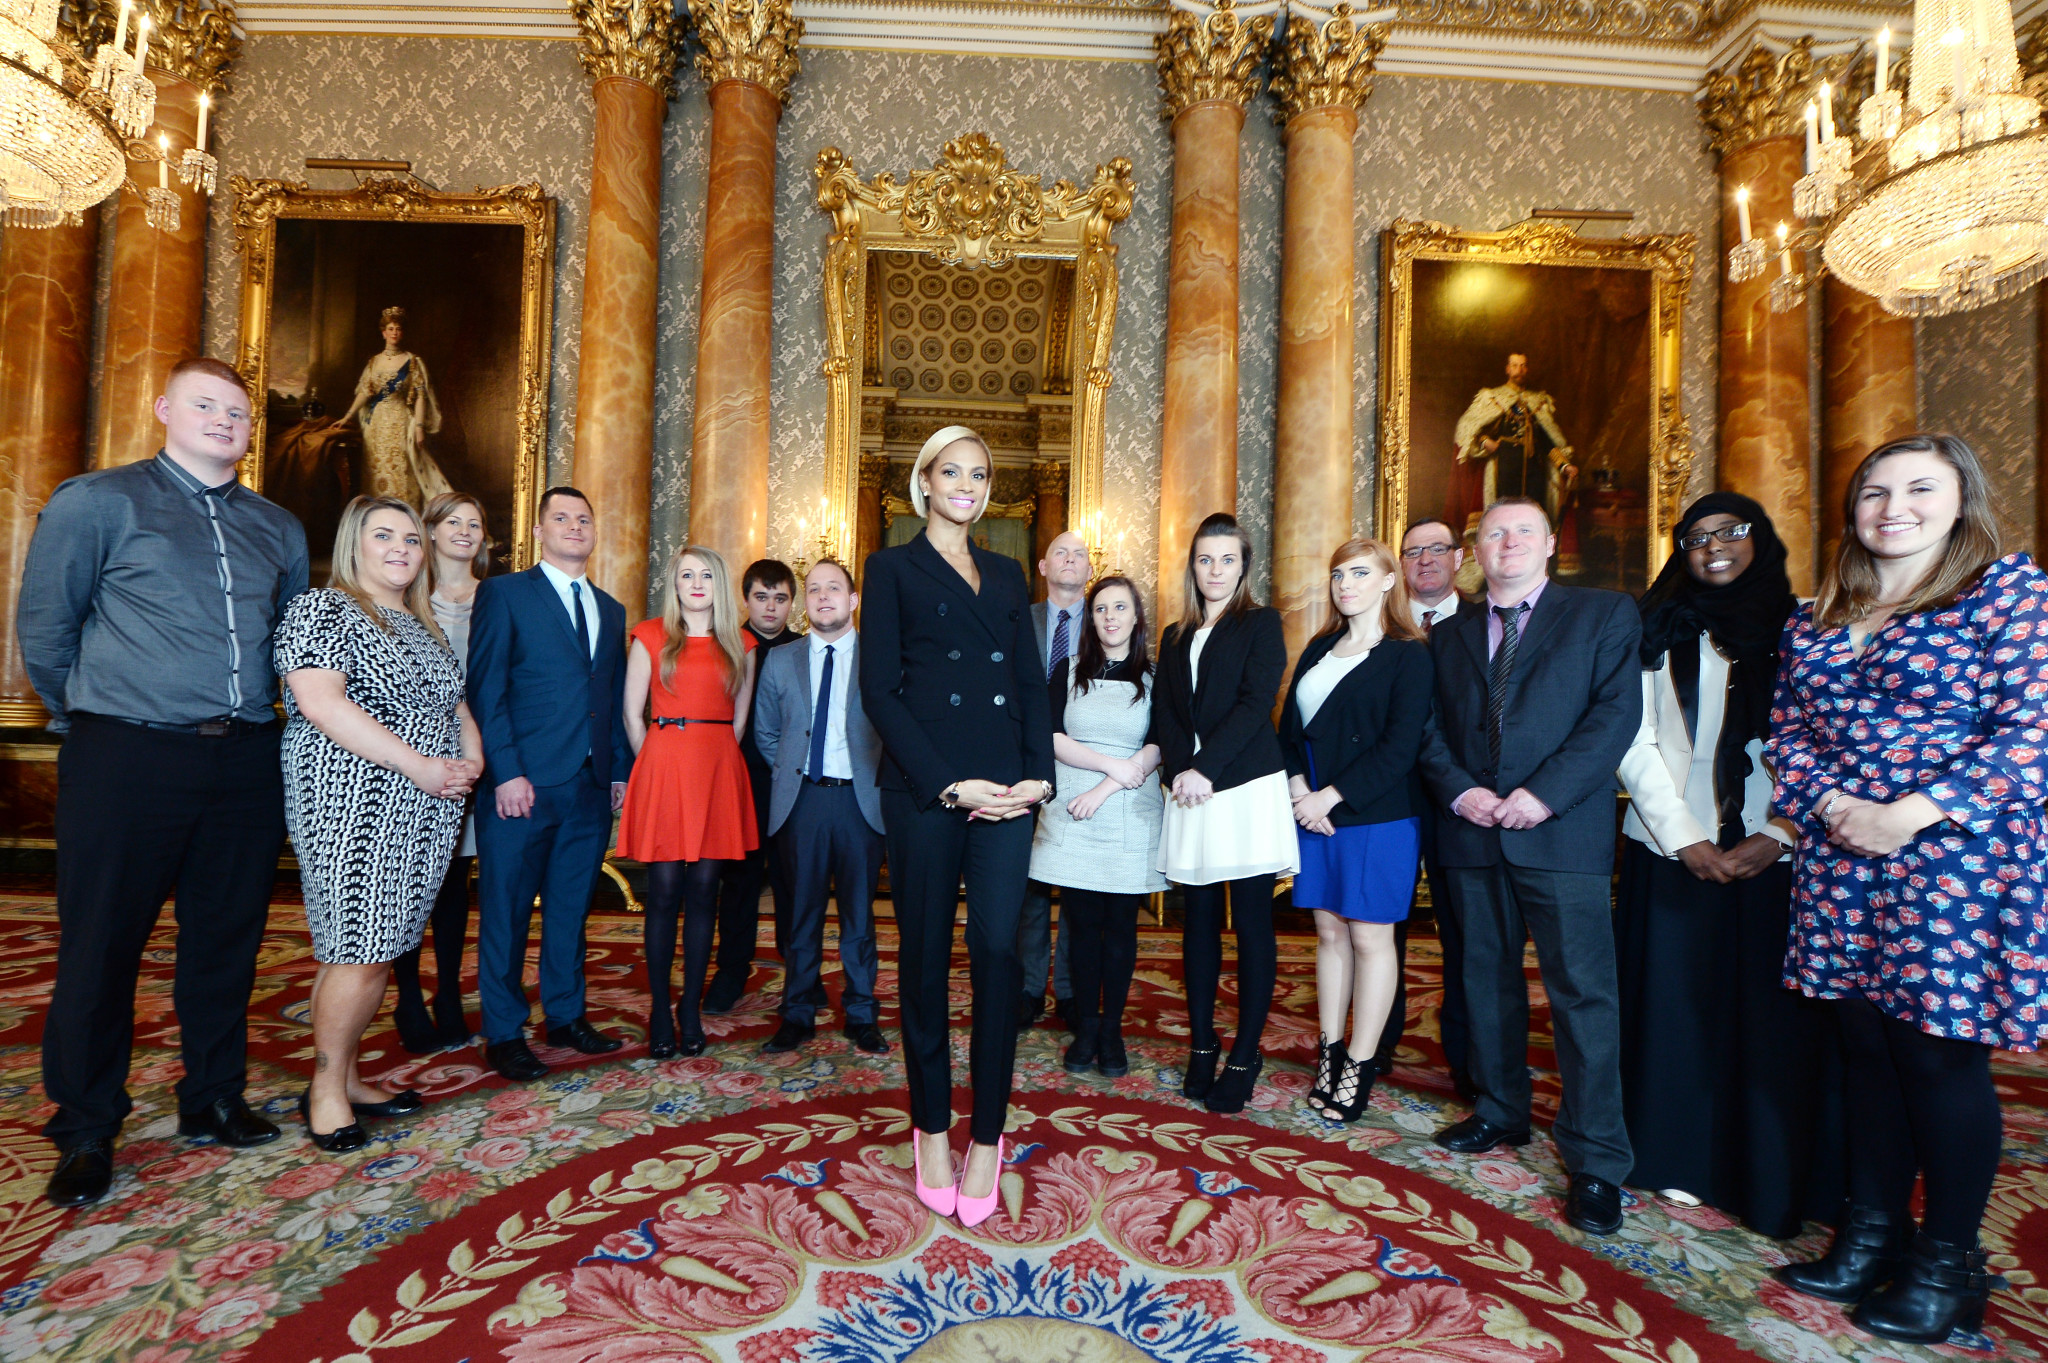 A selection of Queen's Young Leader's Grantees meeting Alesha Dixon at Buckingham Palace. Pictured form left to right: Steven Johnston (YMCA Scotland) Jenny Mitchell (YMCA Scotland) Louise Belsom (UpRising) Spencer Lewis (NYAS) Ami-lee Price (NYAS) Leon Sweeney (Cwmbran) Josh Horgan (Cwmbran) Alesha Dixon Peter McGregor (Who Cares Scotland) Nicole Blain (Who Cares Scotland) Blair Anderson (Include Youth) Courtney McGhee (Northern Ireland Youth Forum) Joe Hamill (Northern Ireland Youth Forum) John McComb (Include Youth) Qadar Arif (Media Trust) Jessica Lee (Media Trust)